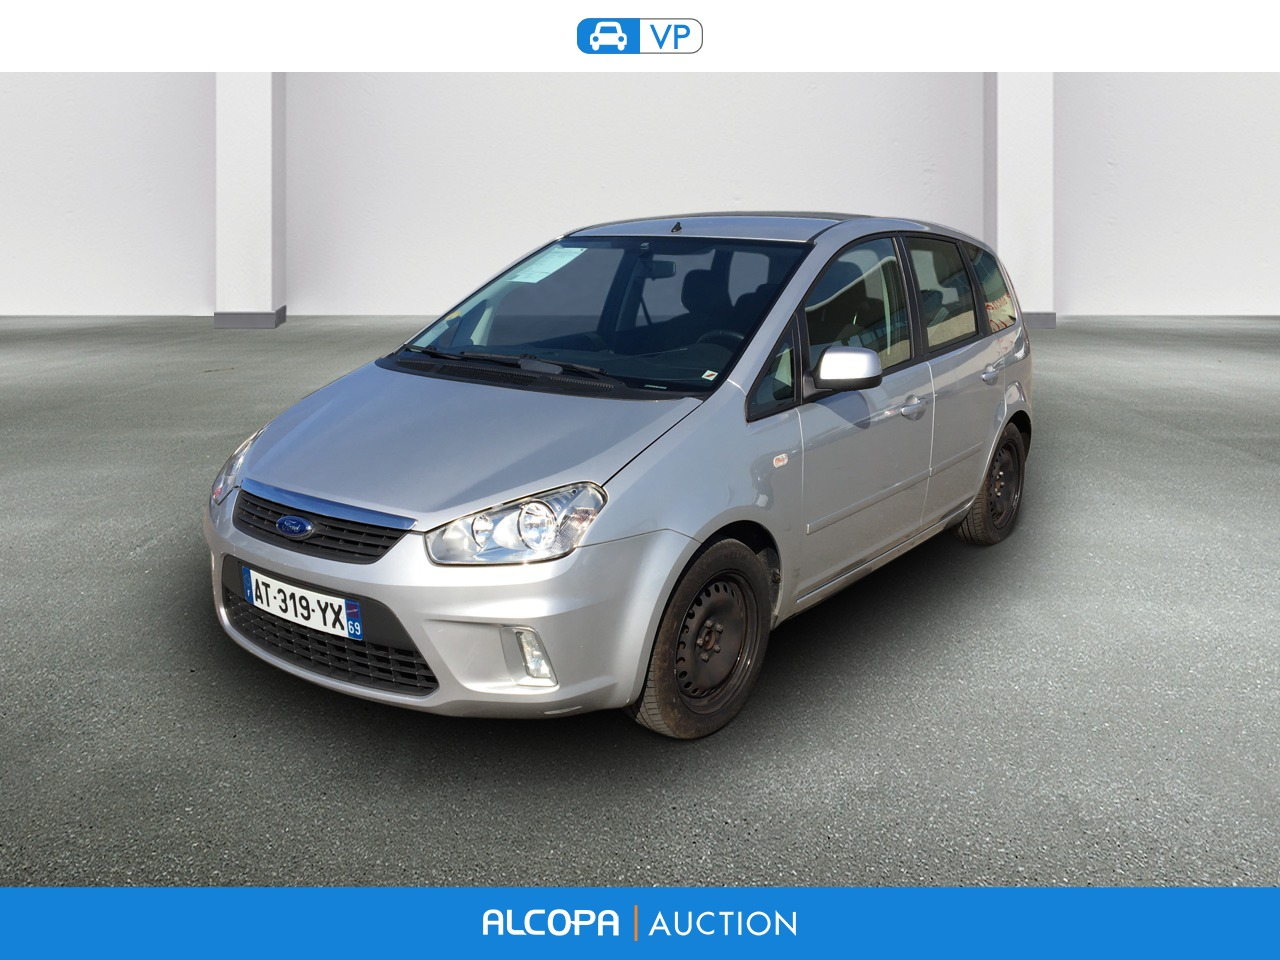 Ford C-max 1.6 Tdci Ford C Max C Max 1 6 Tdci 90 Trend Alcopa Auction